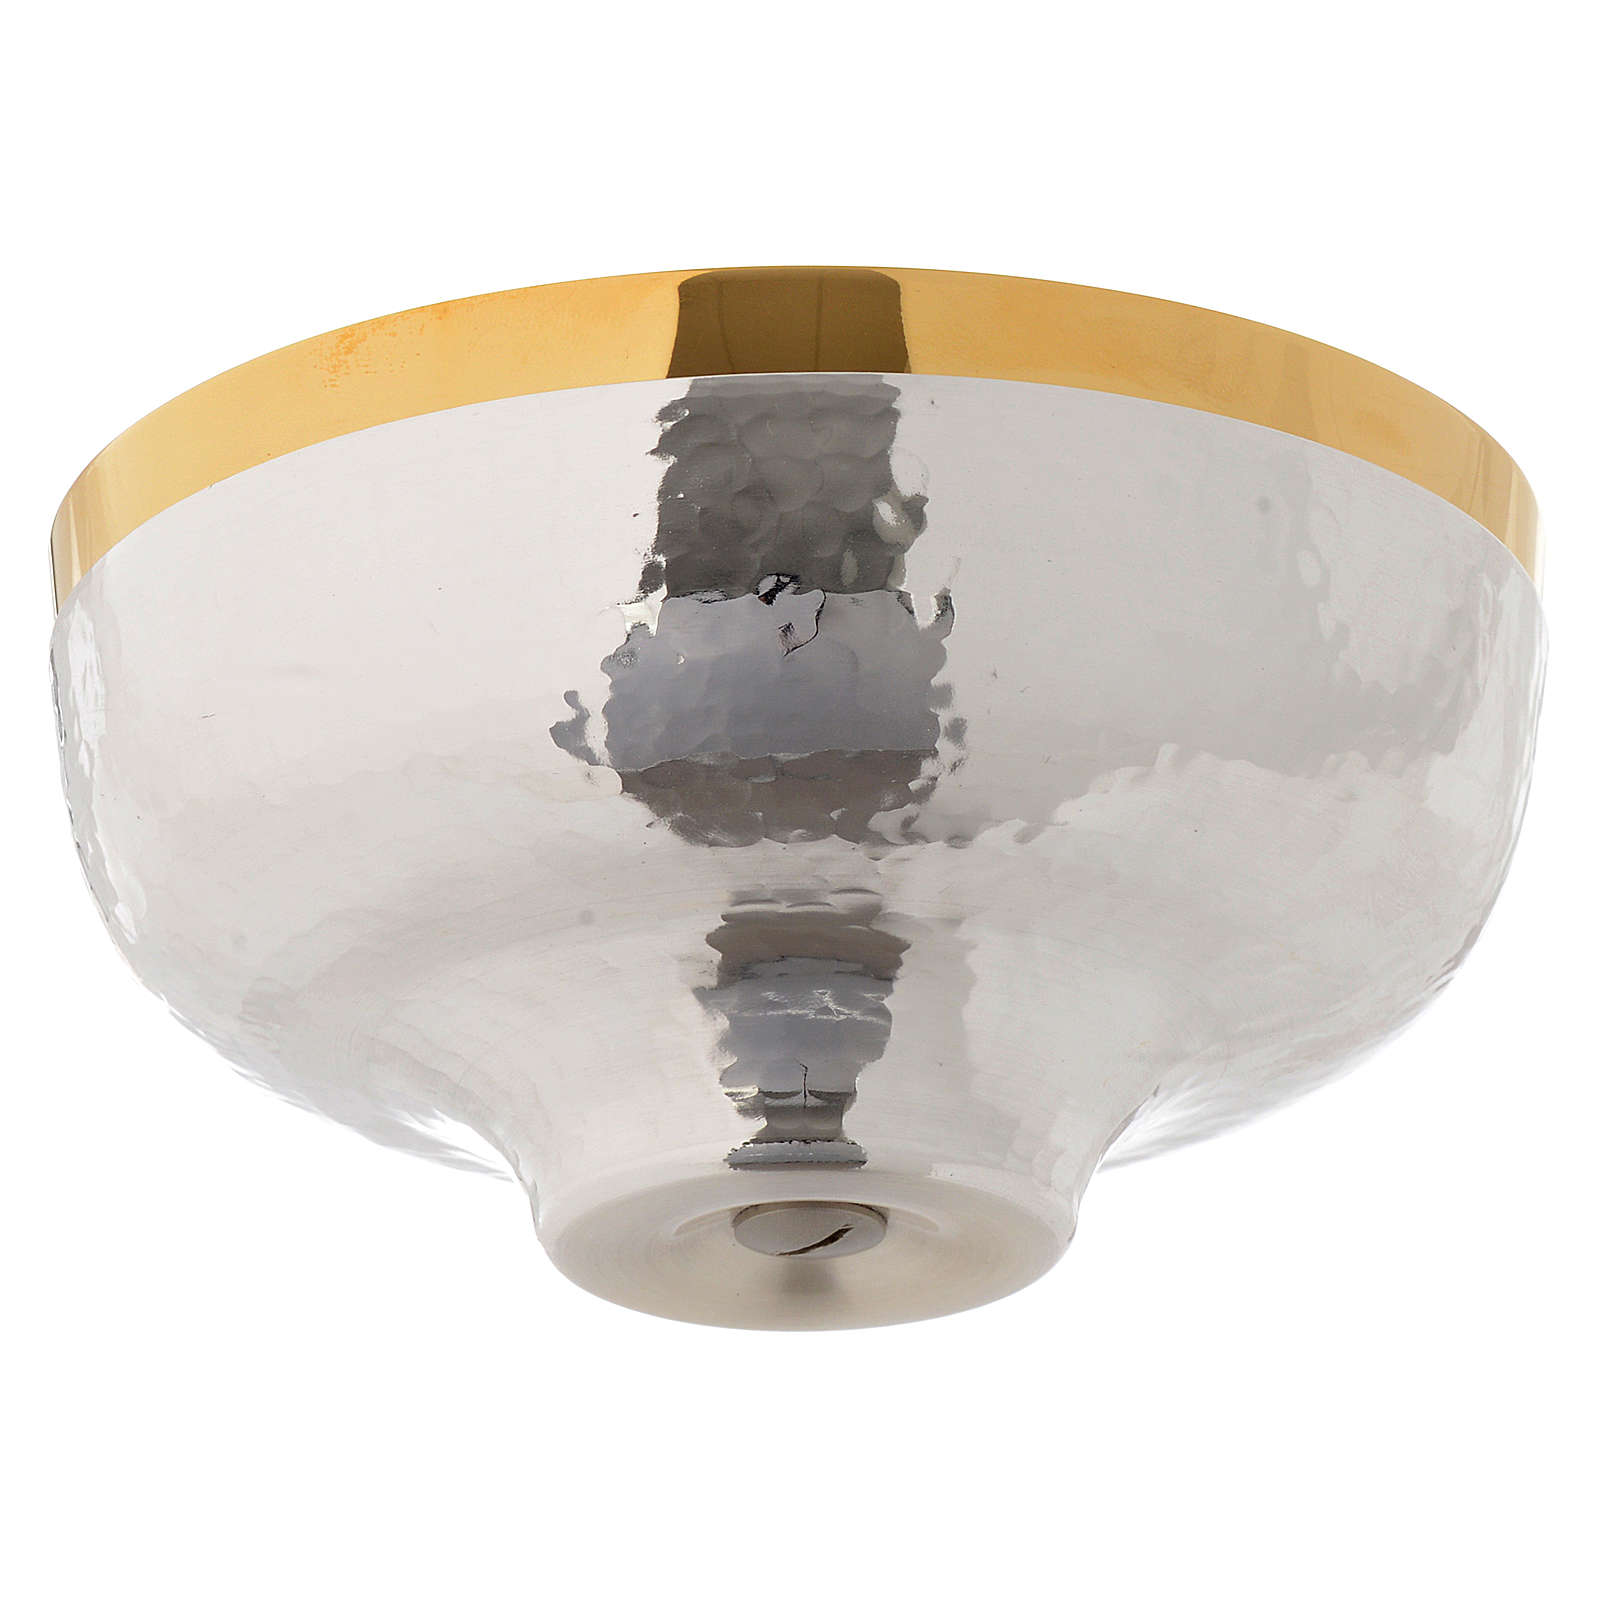 Bowl paten hand hammered in gold and silver plated brass 4